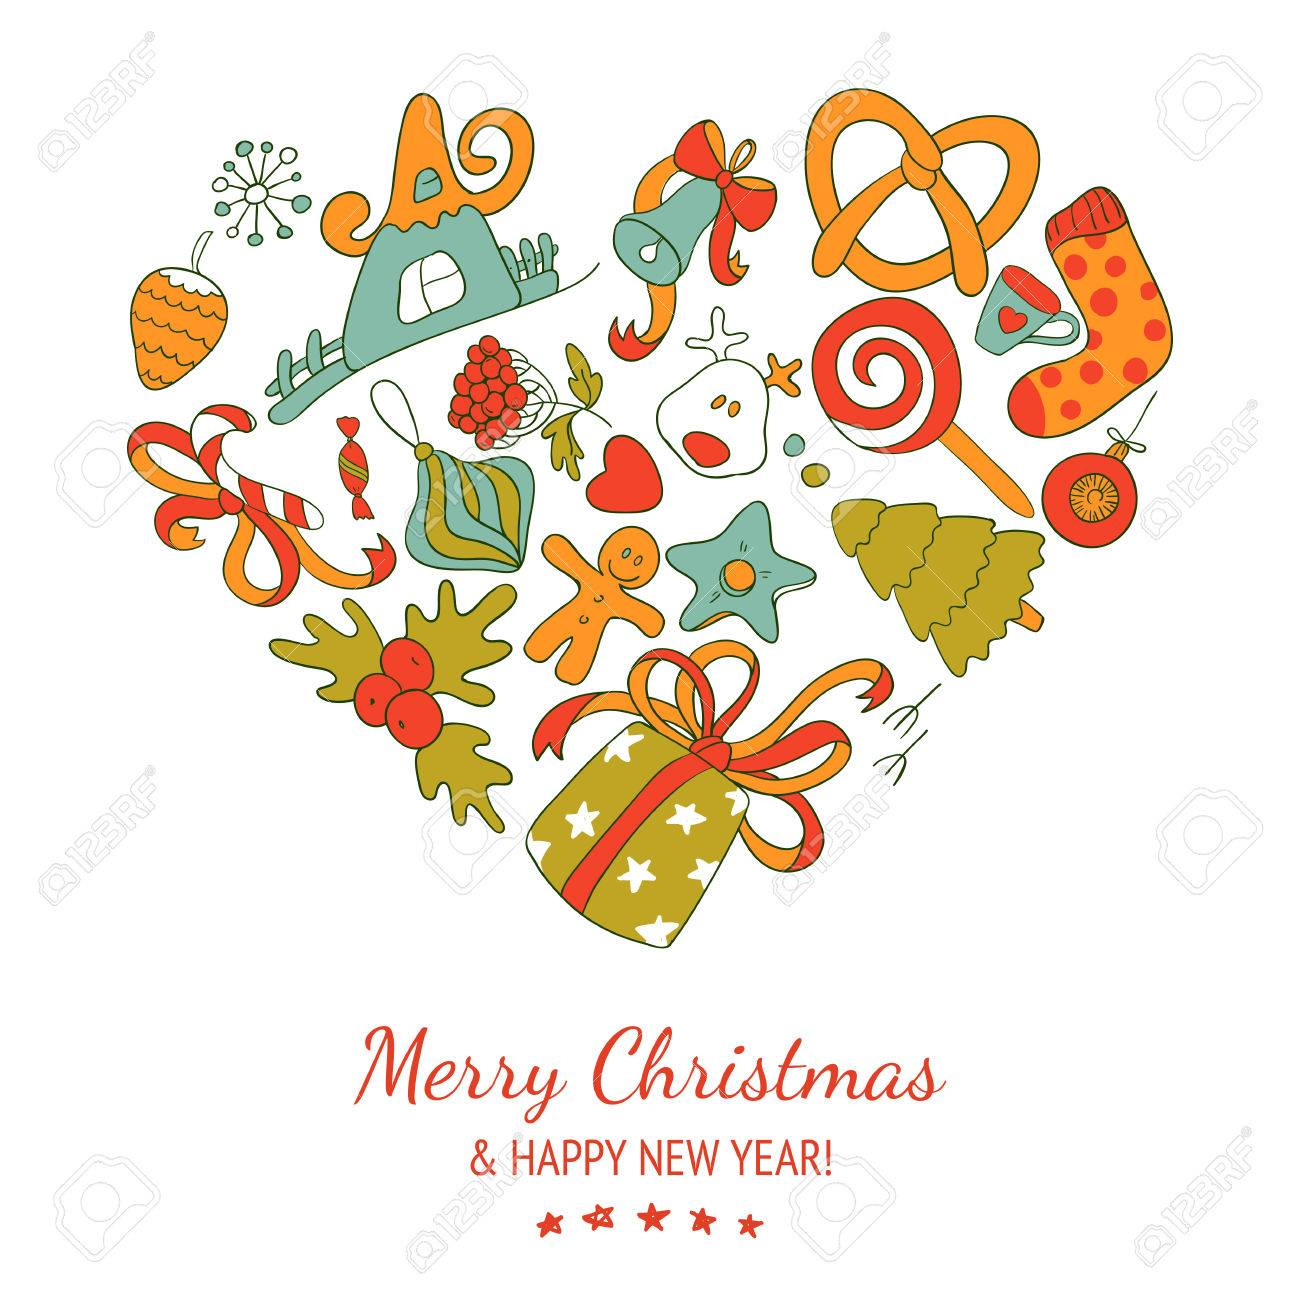 Christmas Heart Vector.Vector Christmas Heart New Year Drawing Background Happy Holidays